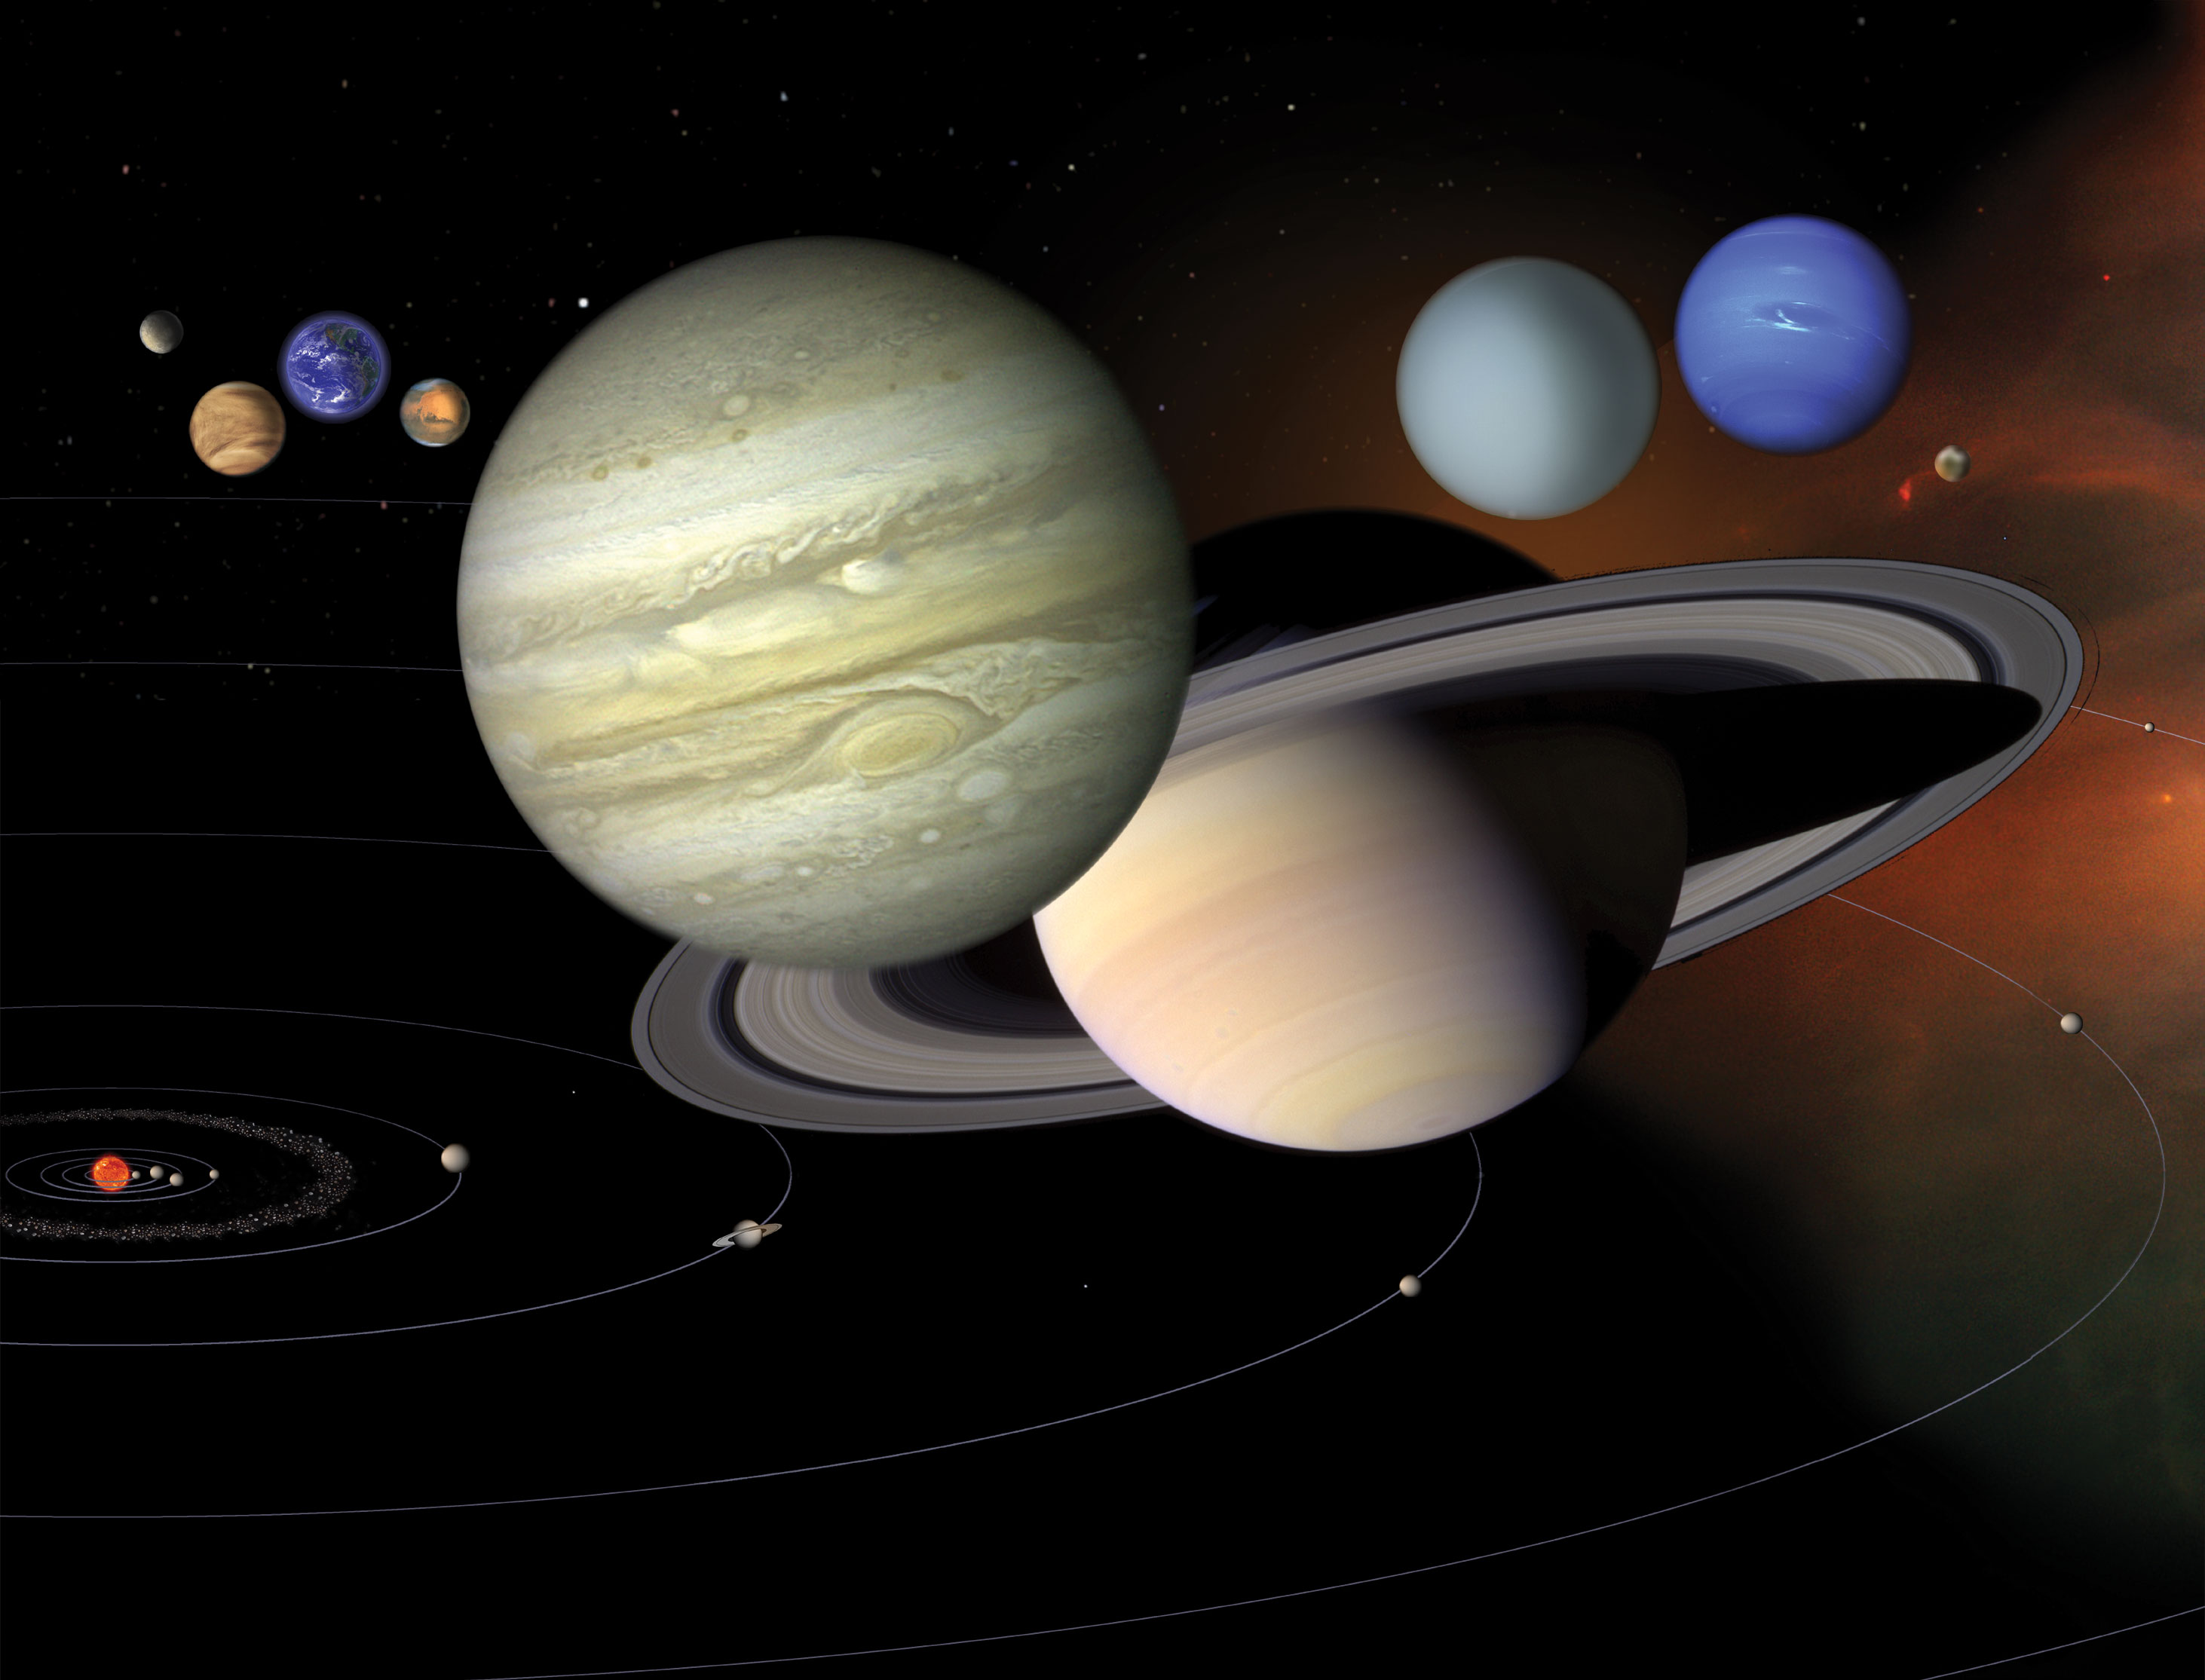 Solar system scales artists concept solar system exploration download ccuart Choice Image